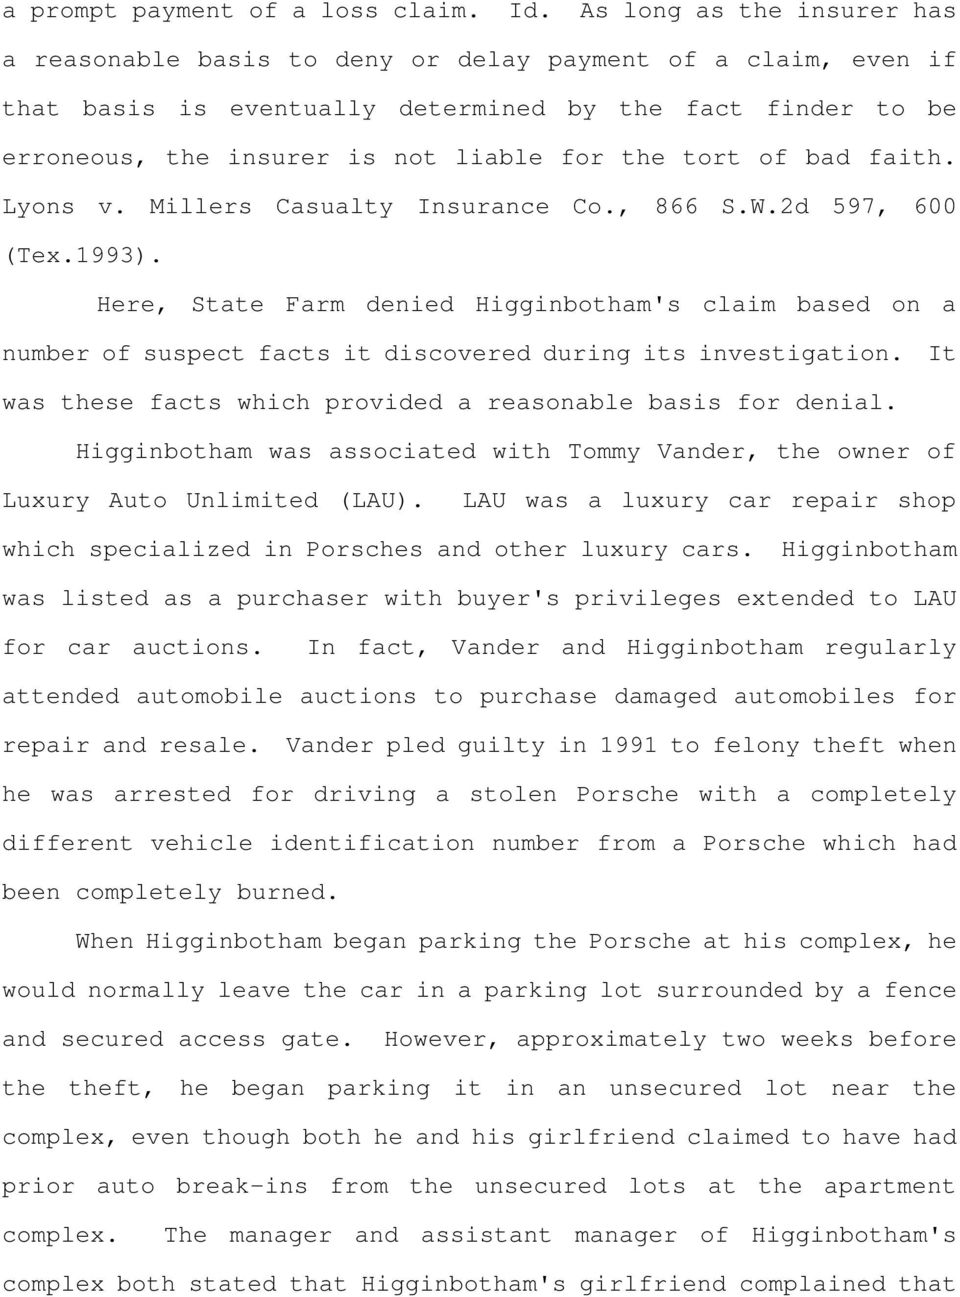 tort of bad faith. Lyons v. Millers Casualty Insurance Co., 866 S.W.2d 597, 600 (Tex.1993).